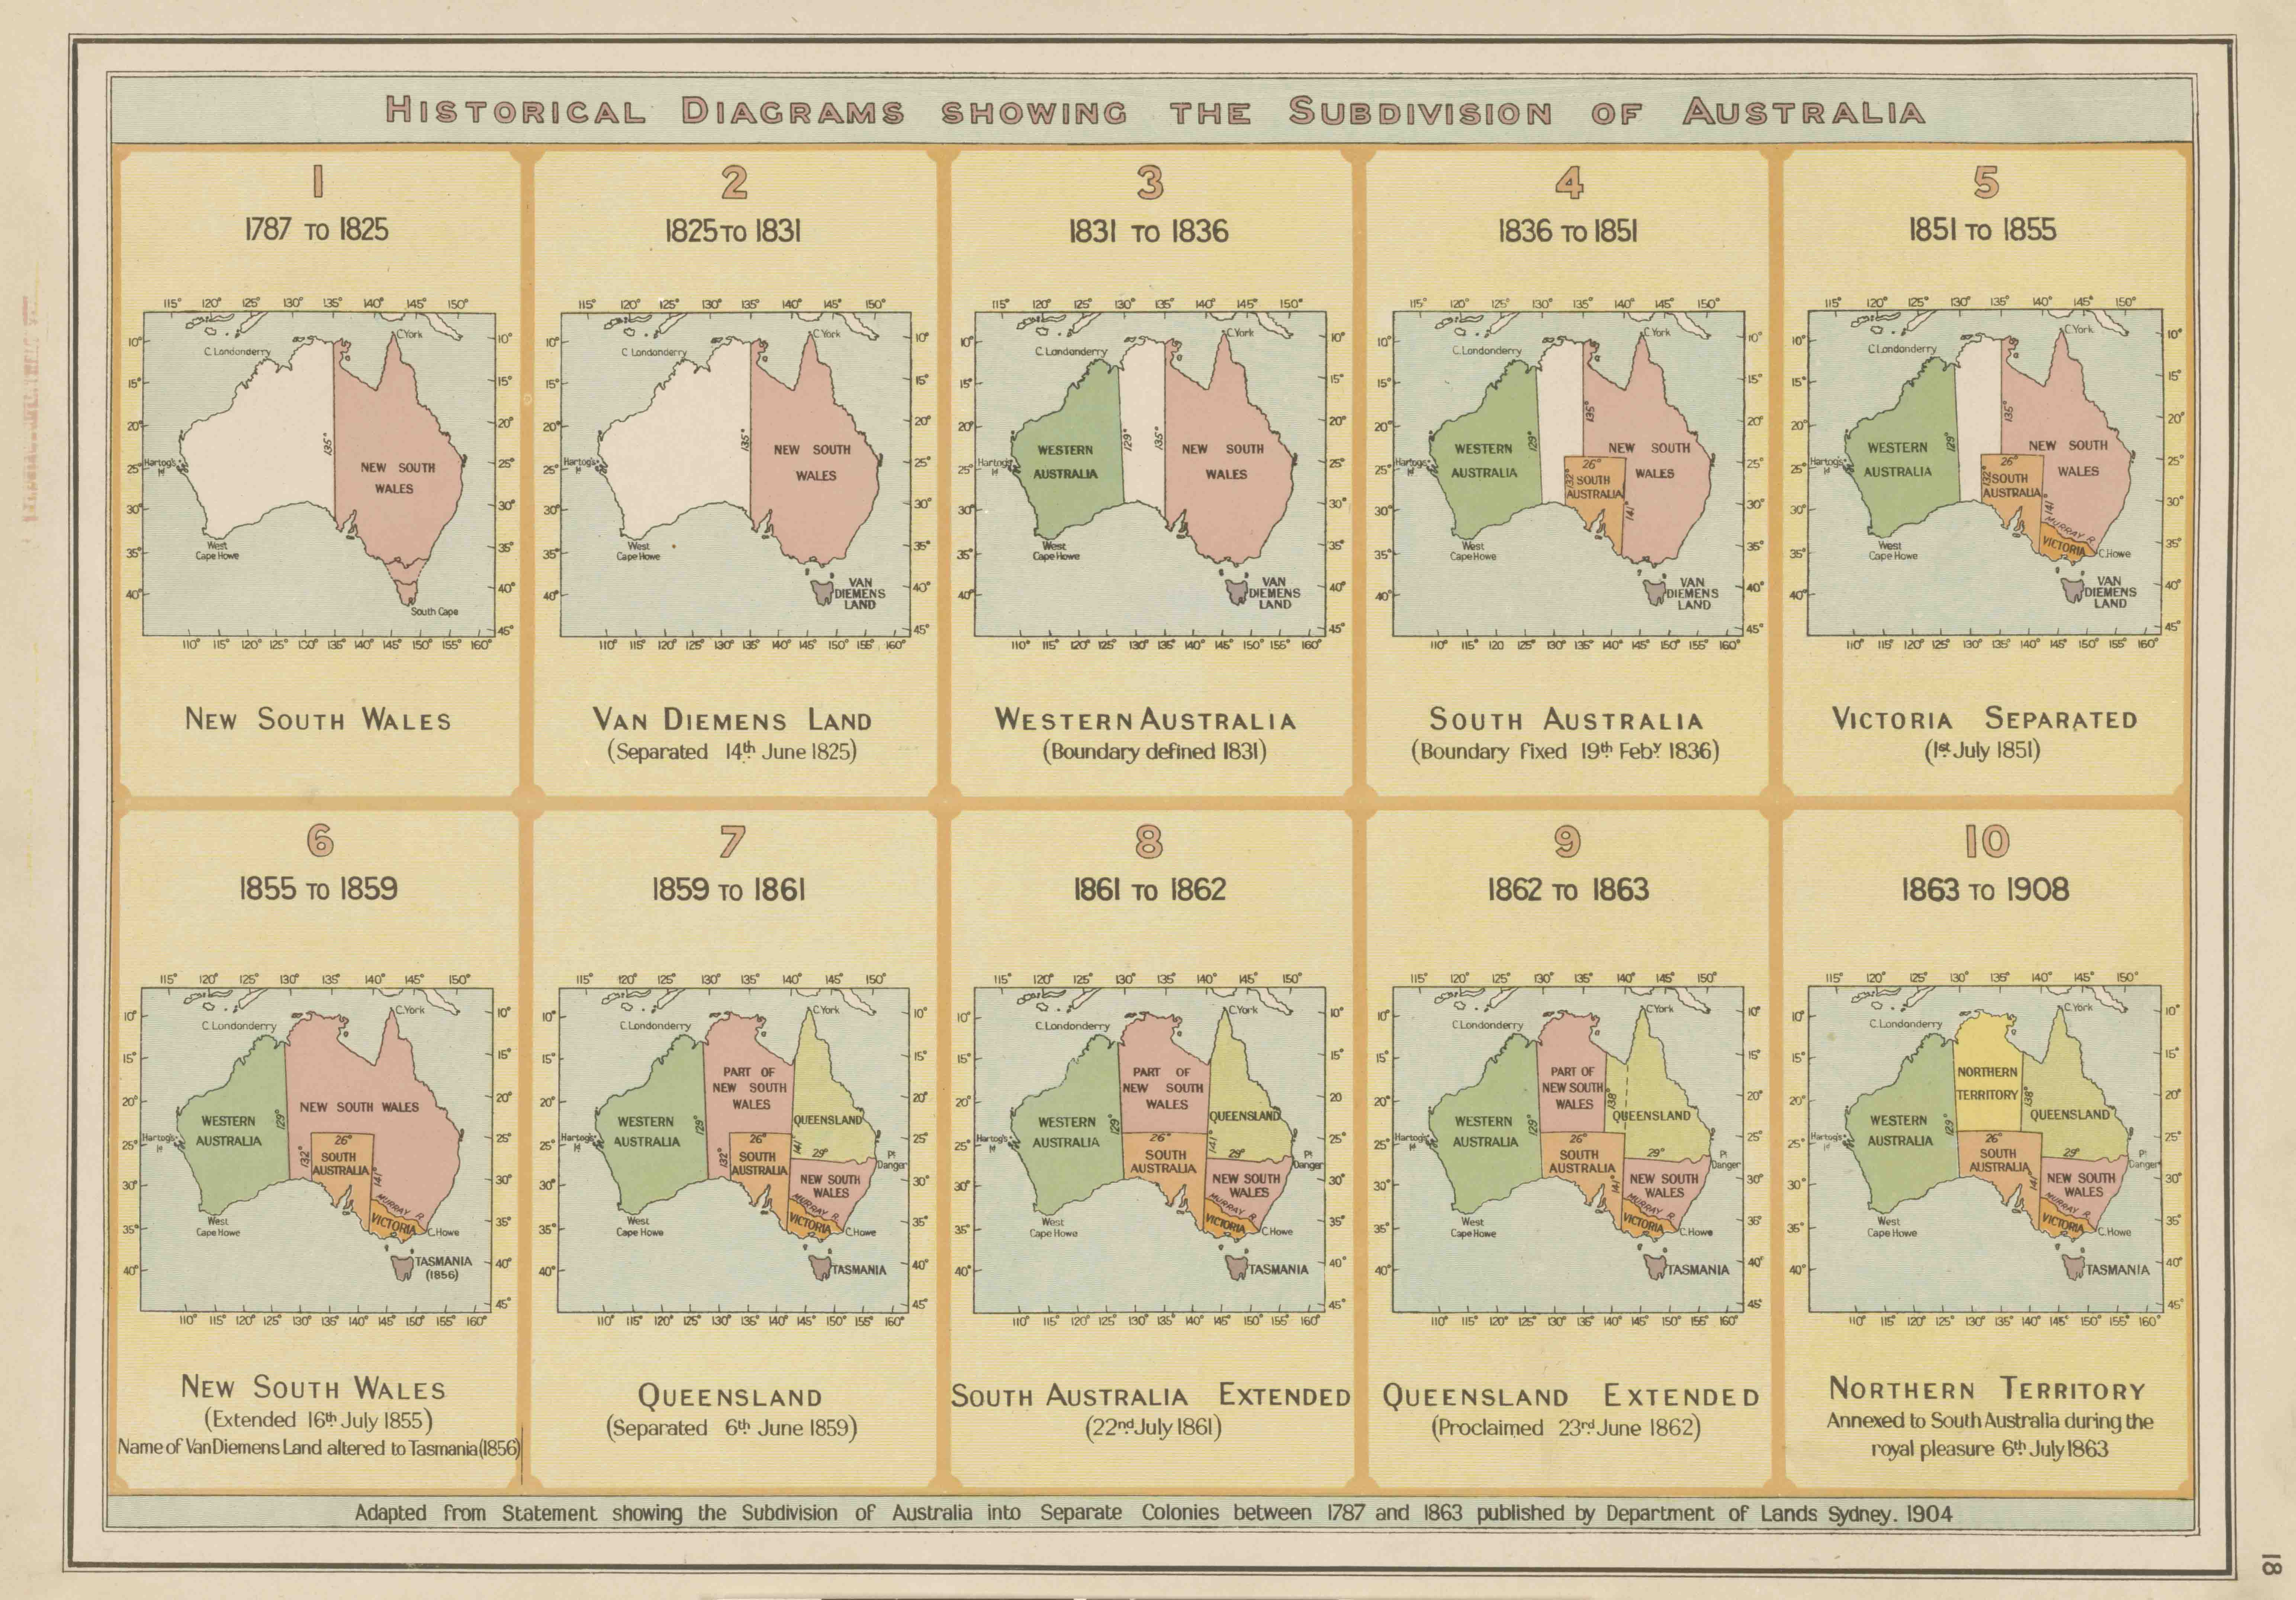 Historical Diagrams Showing The Subdivision Of Australia